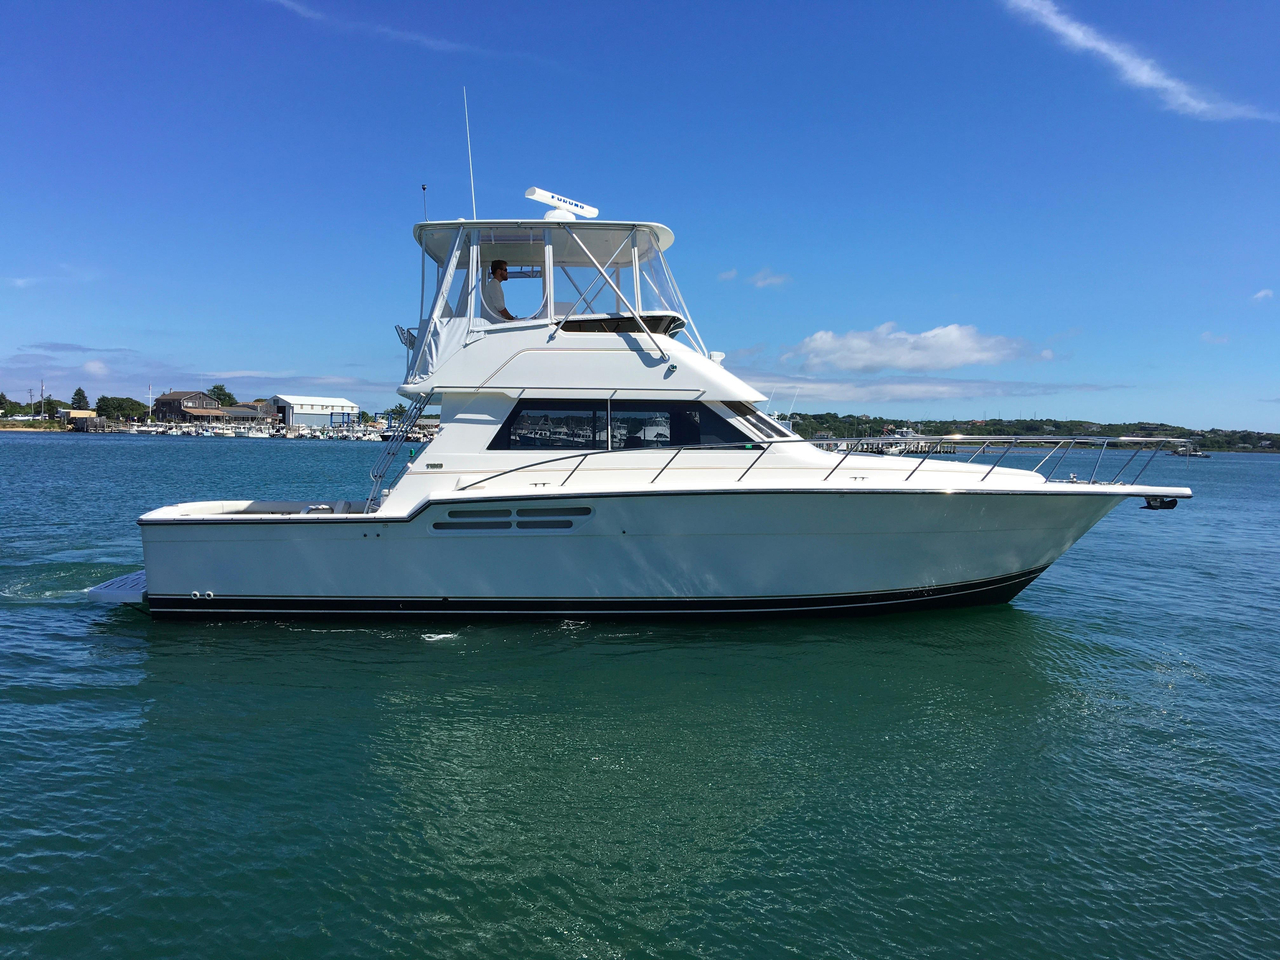 2000 Used Tiara 4300 Convertible Fishing Boat For Sale